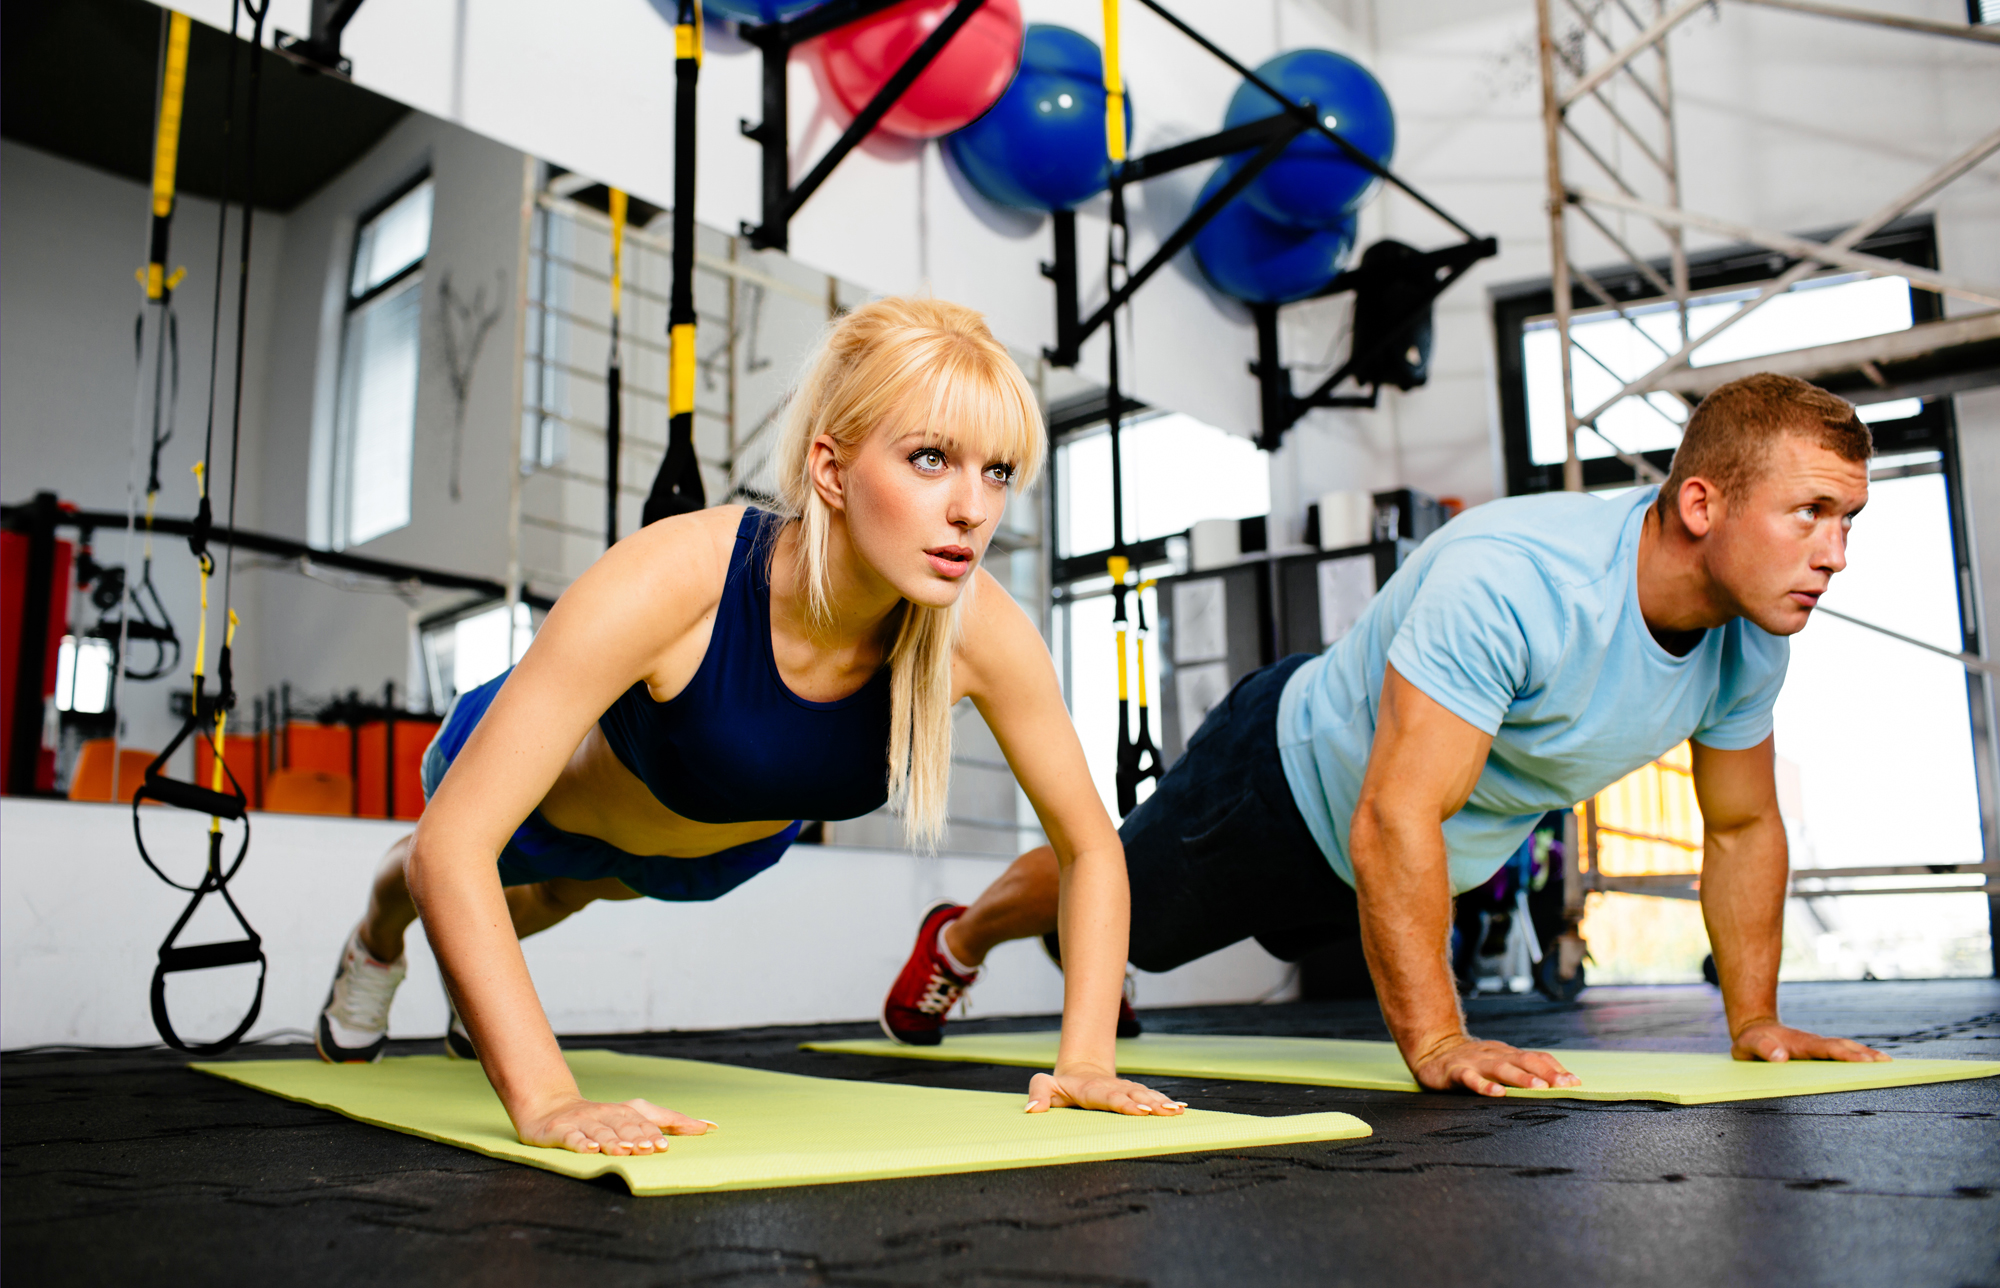 City Beat News Identifies Top Fitness Centers & Personal Trainers In All 50 States